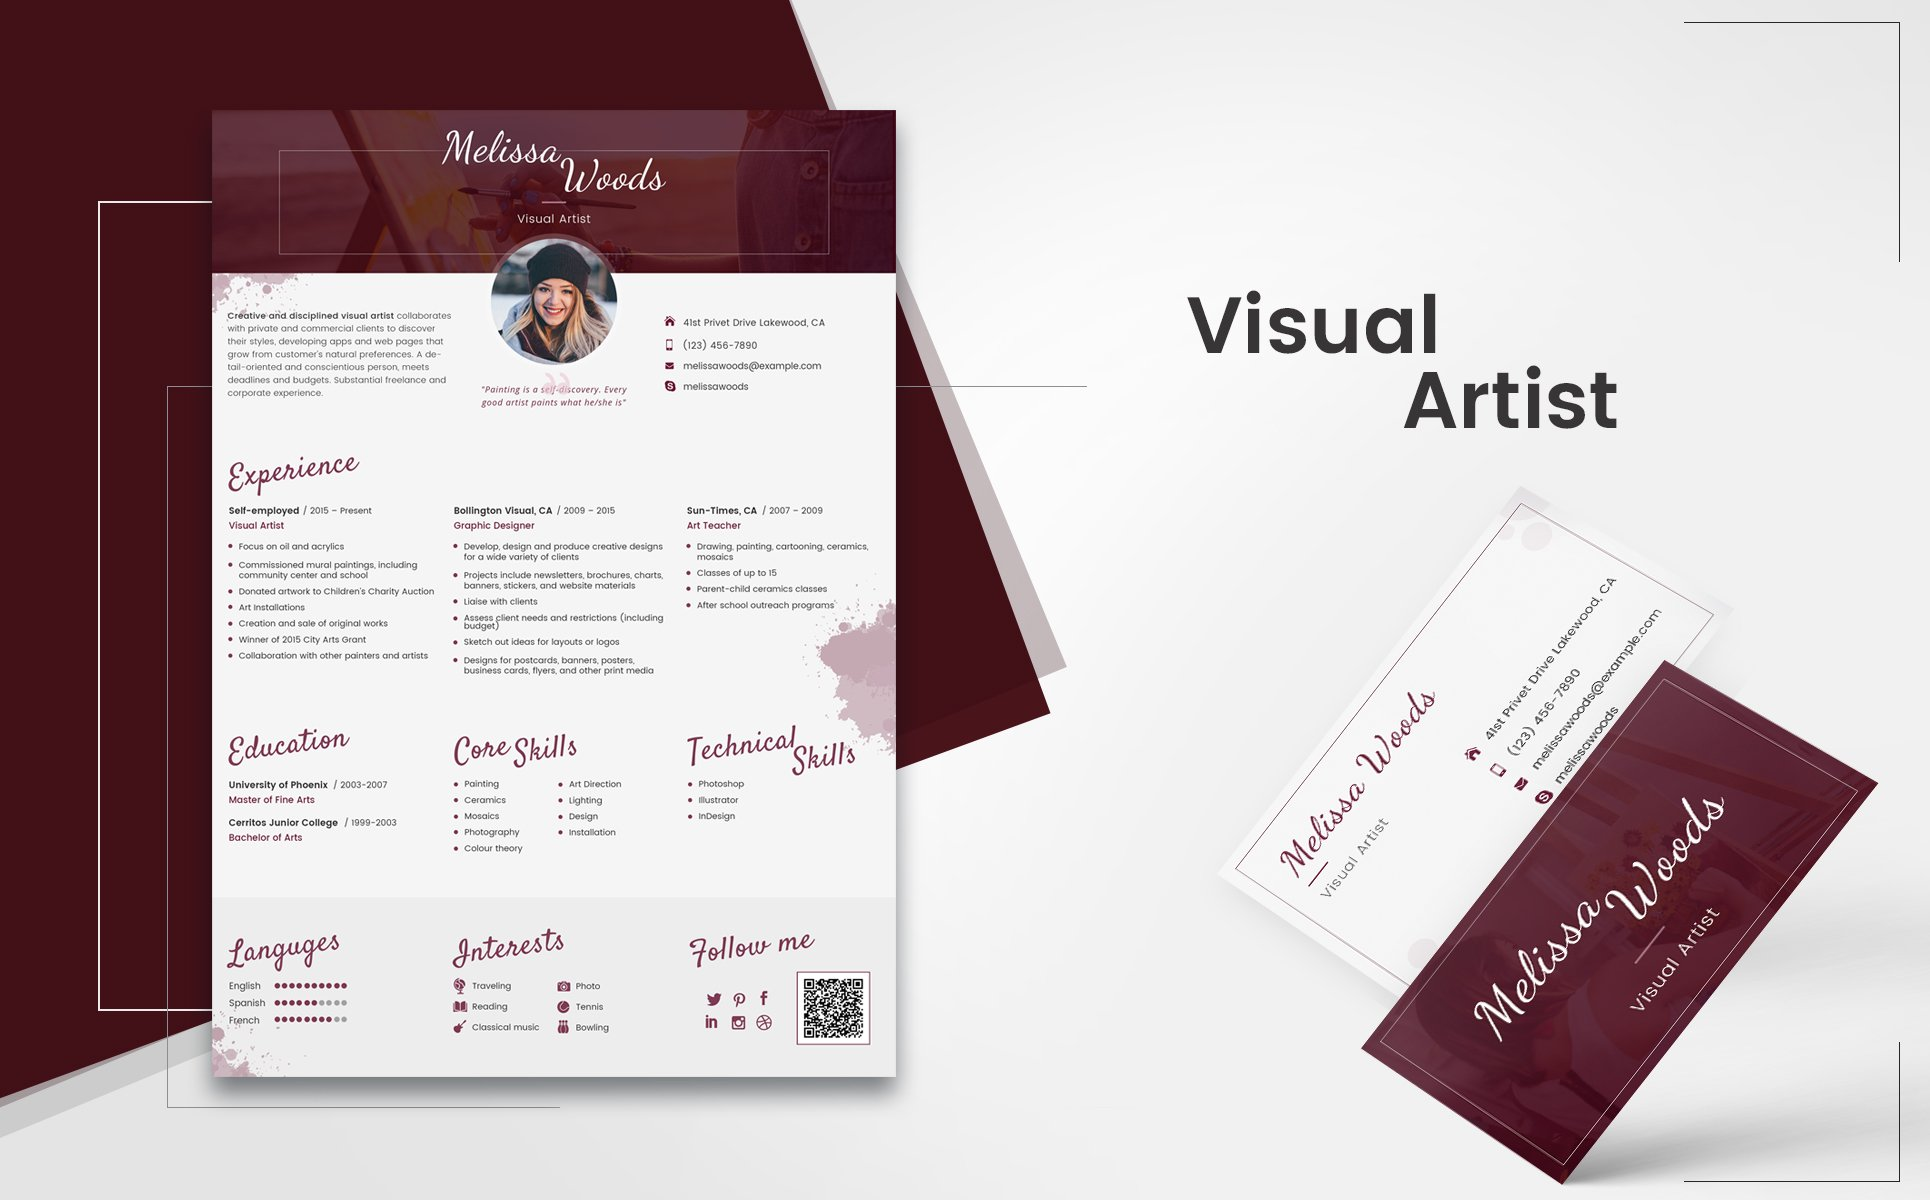 melissa woods visual artist resume template big screenshot - Artist Resume